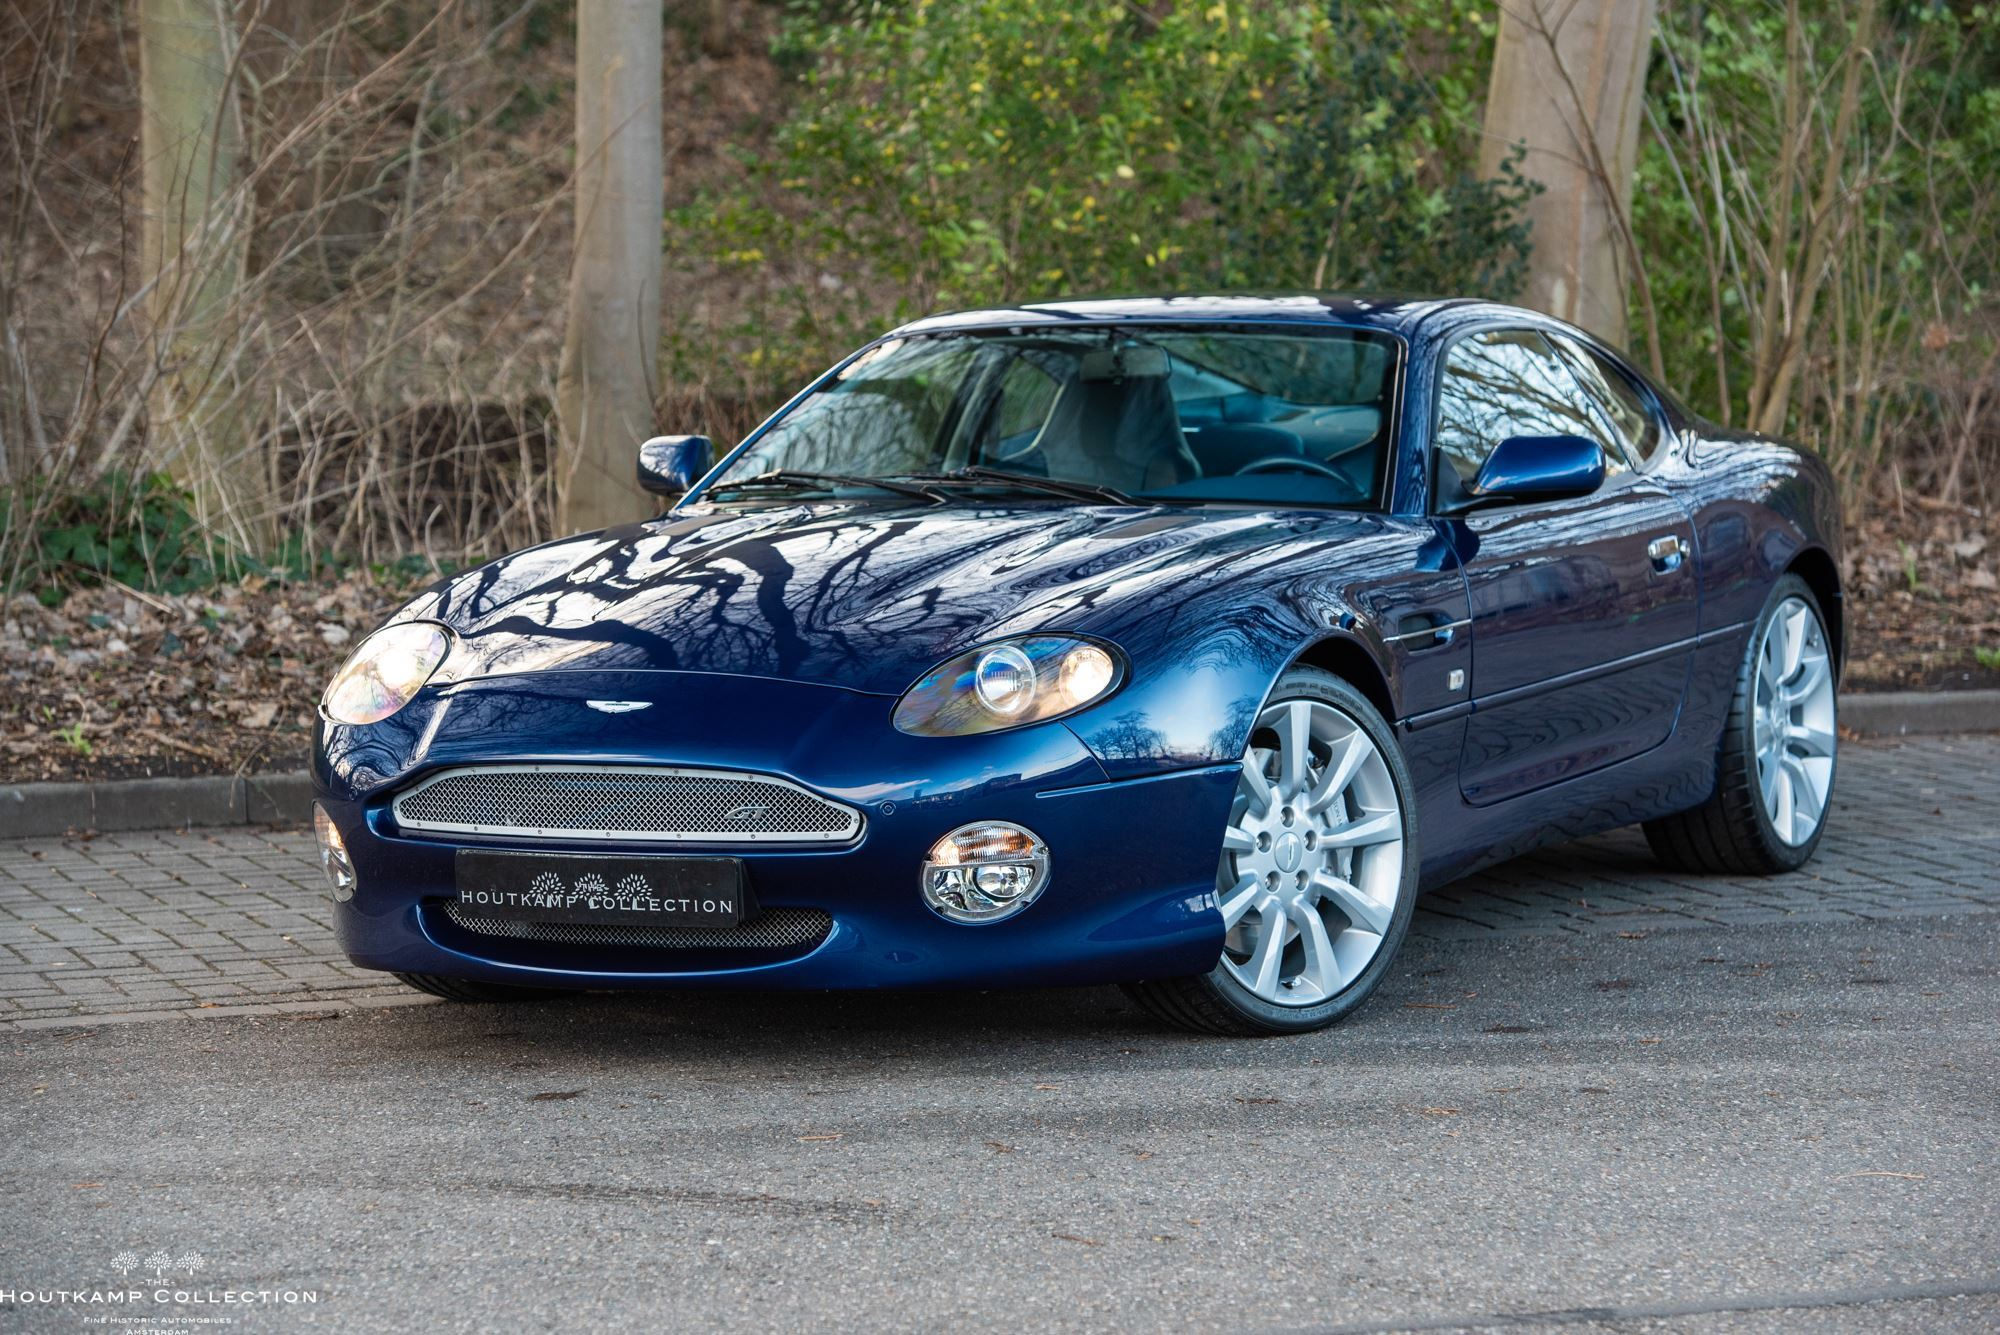 aston martin db7 gt the houtkamp collection